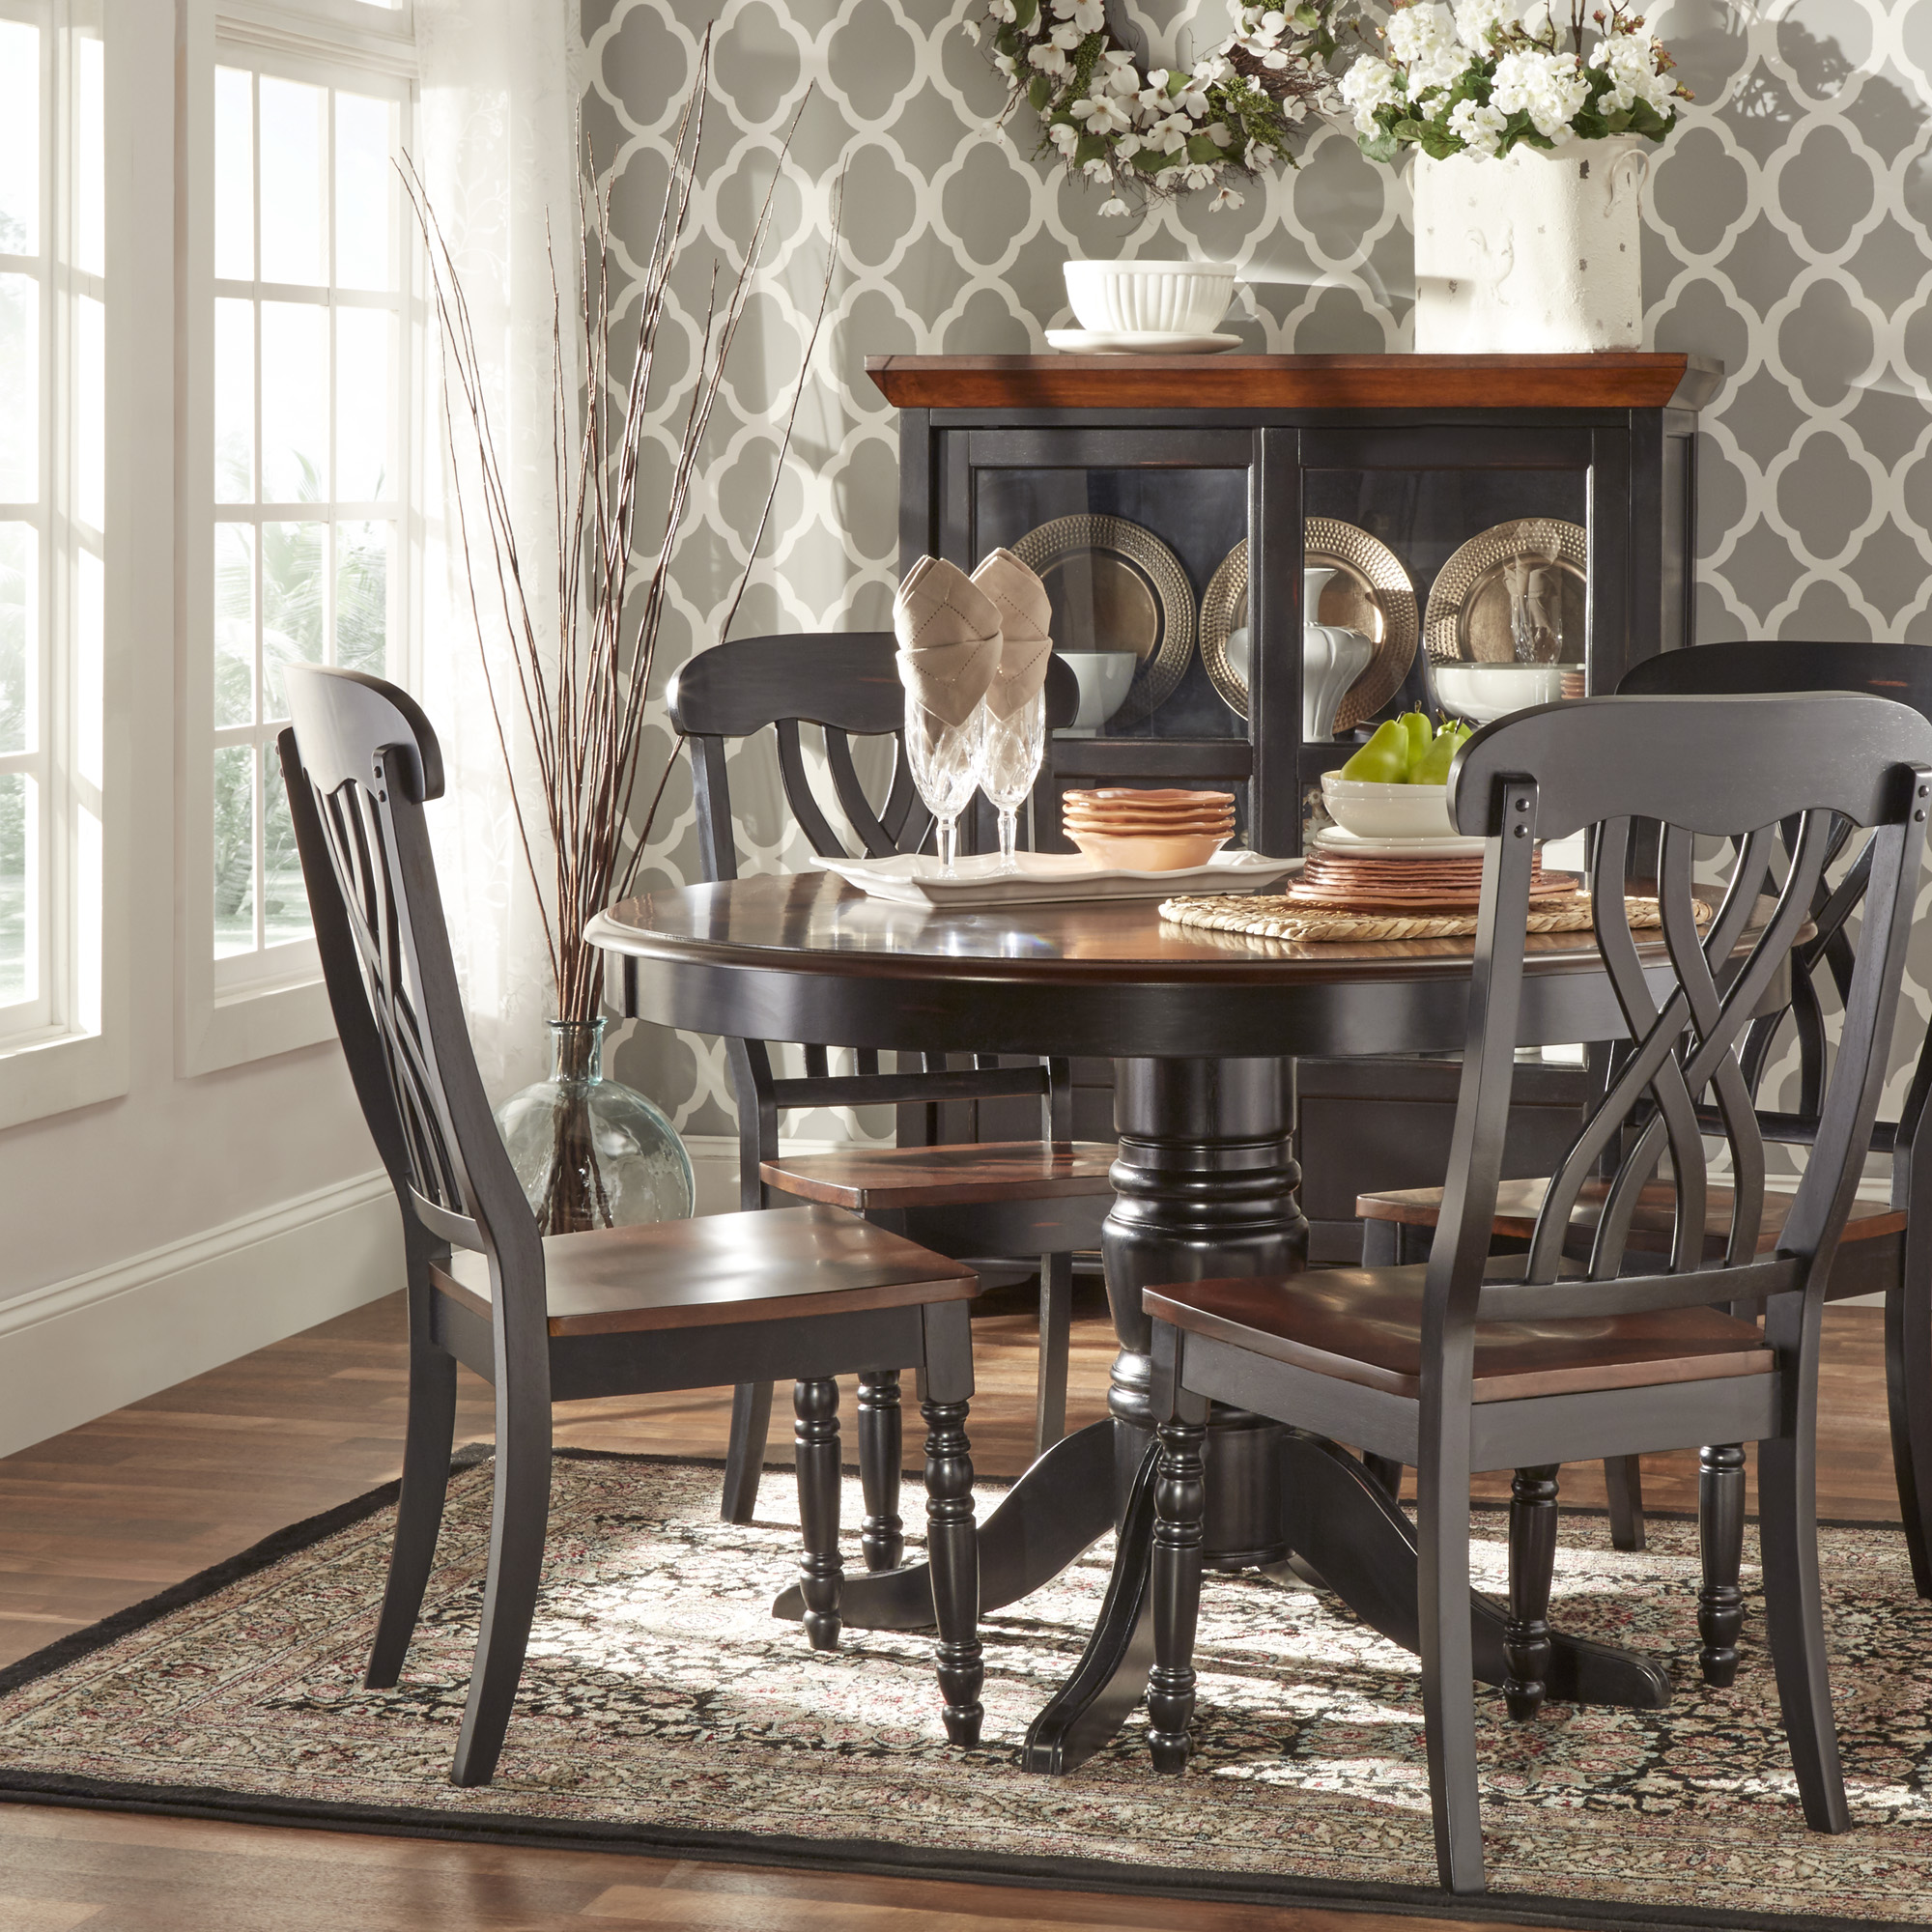 Attrayant Weston Home Two Tone 5 Piece Round Dining Set, Antique Black